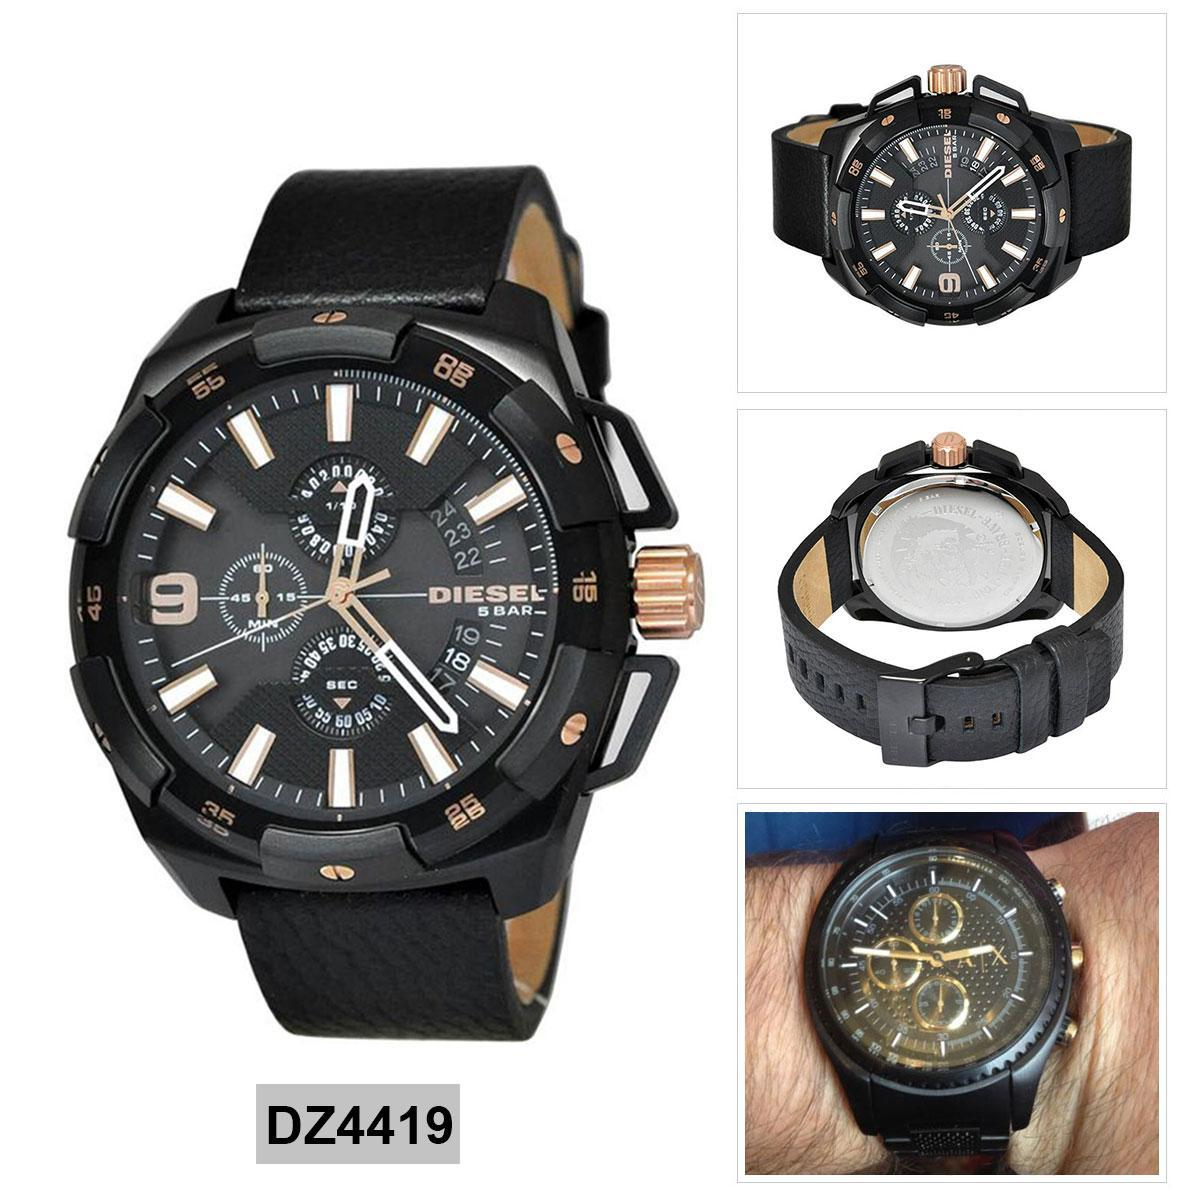 การใช้งาน  อุตรดิตถ์ Authentic Diesel Heavyweight Chronograph Black Stainless-Steel Case Leather Strap Mens DZ4419 2 Years Warranty